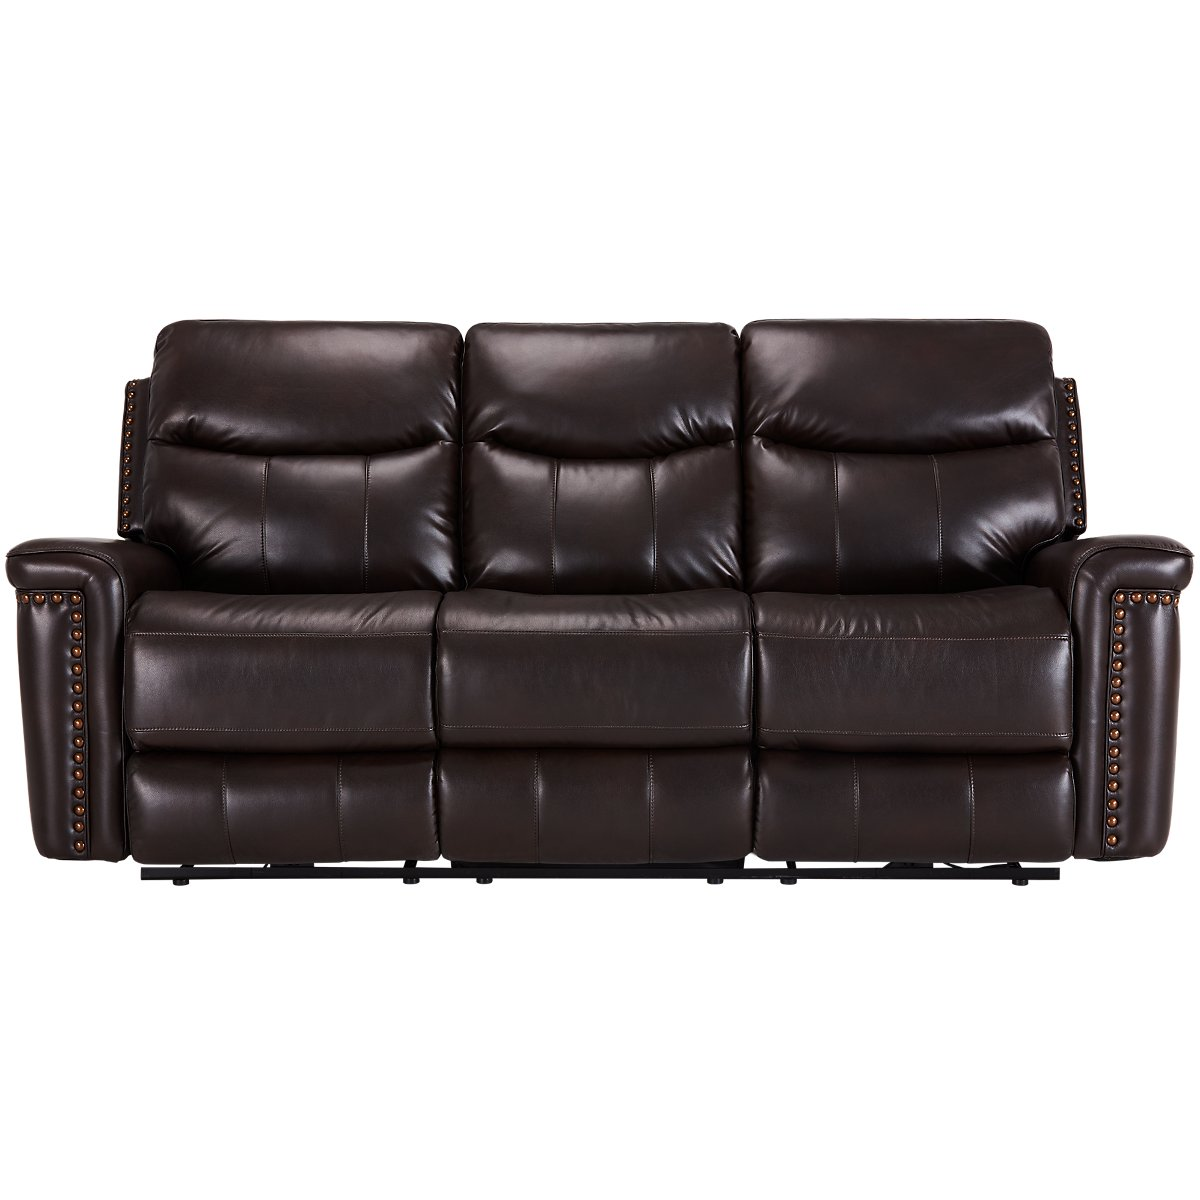 City Furniture Wallace Dark Brown Microfiber Power